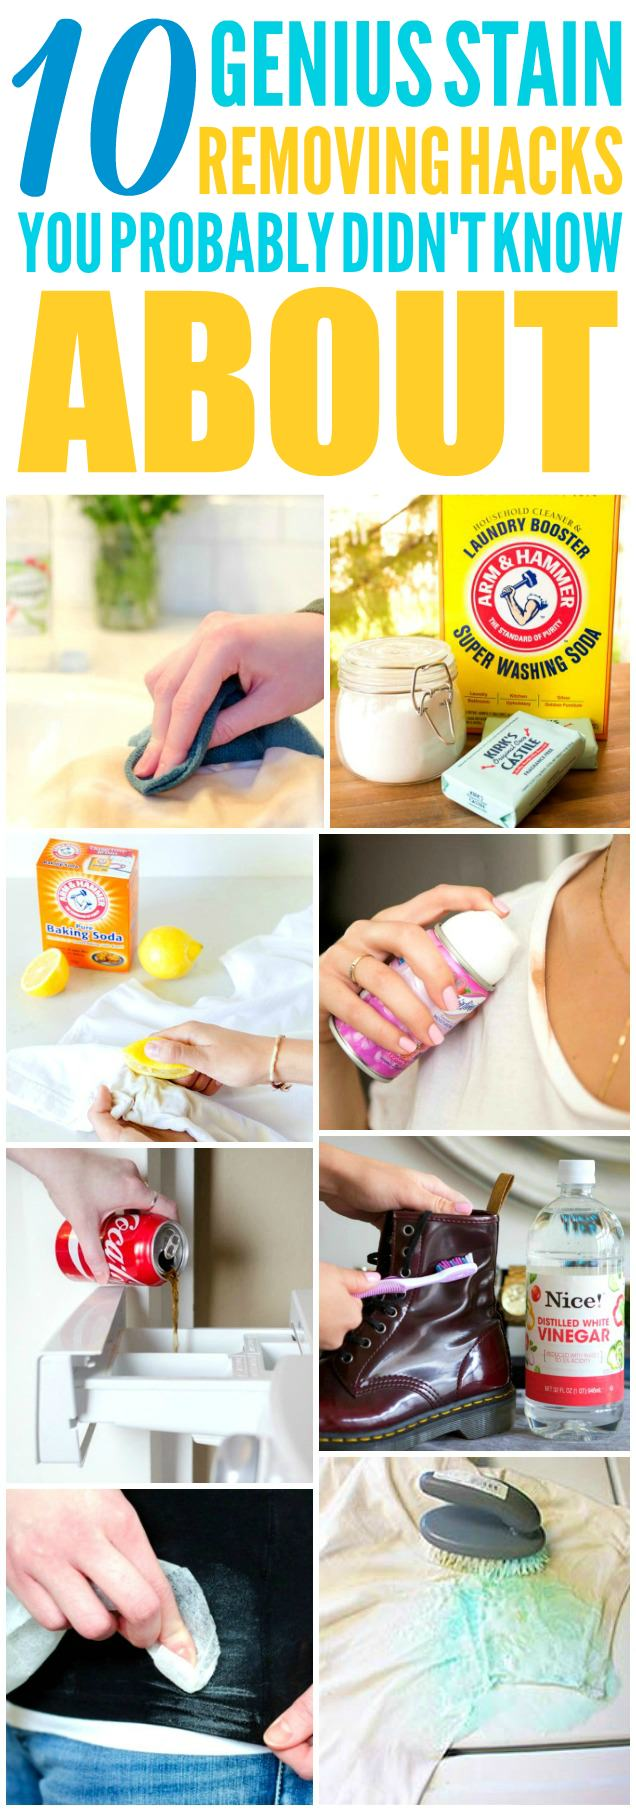 These awesome stain removing tips and tricks will definitely save you a lot of time and money!